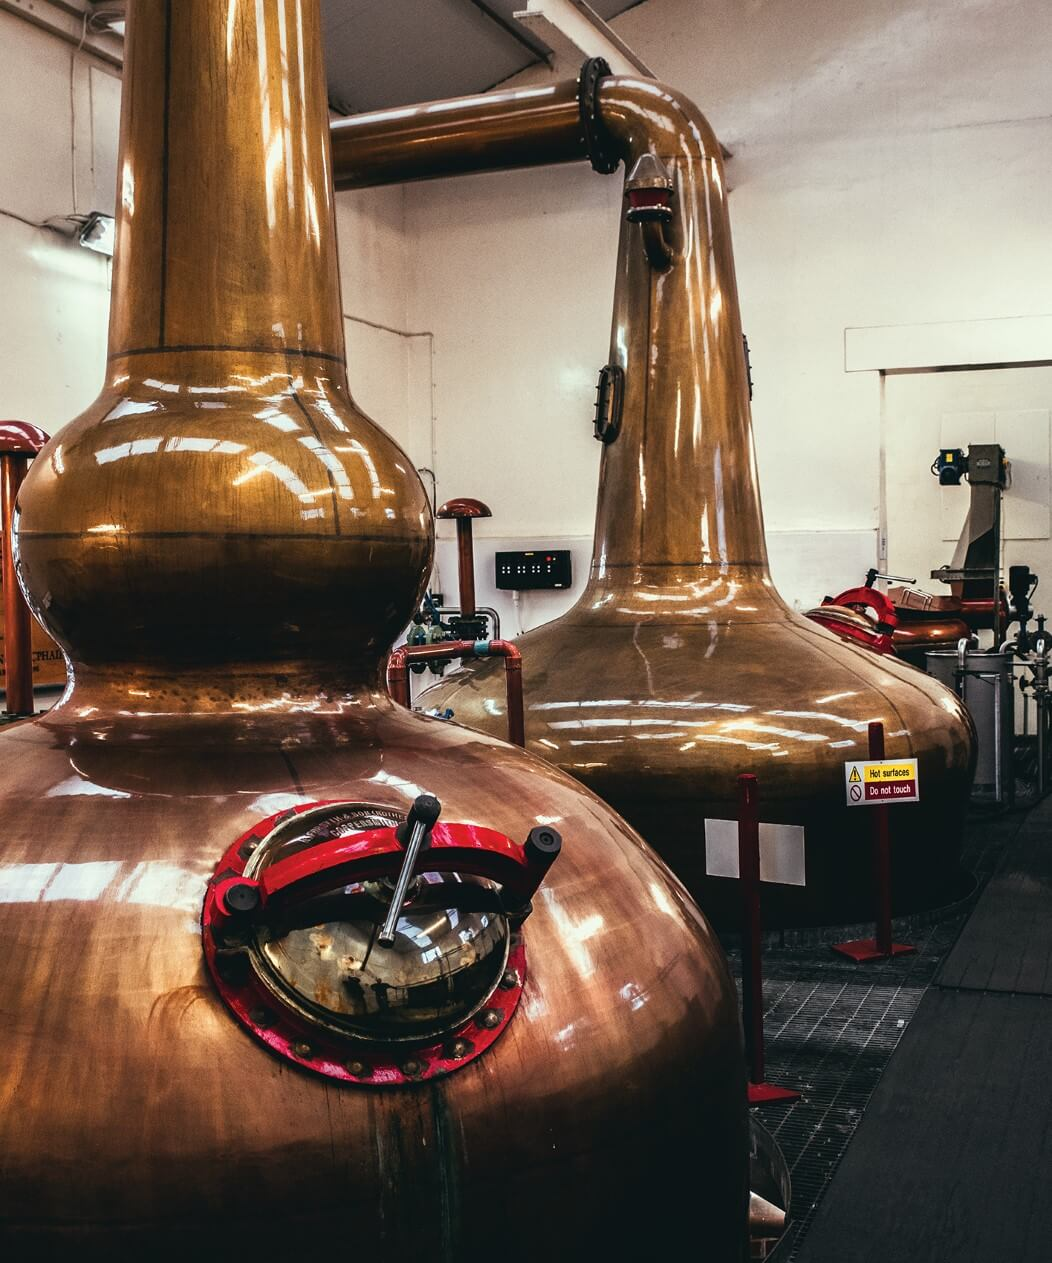 The Benromach still house